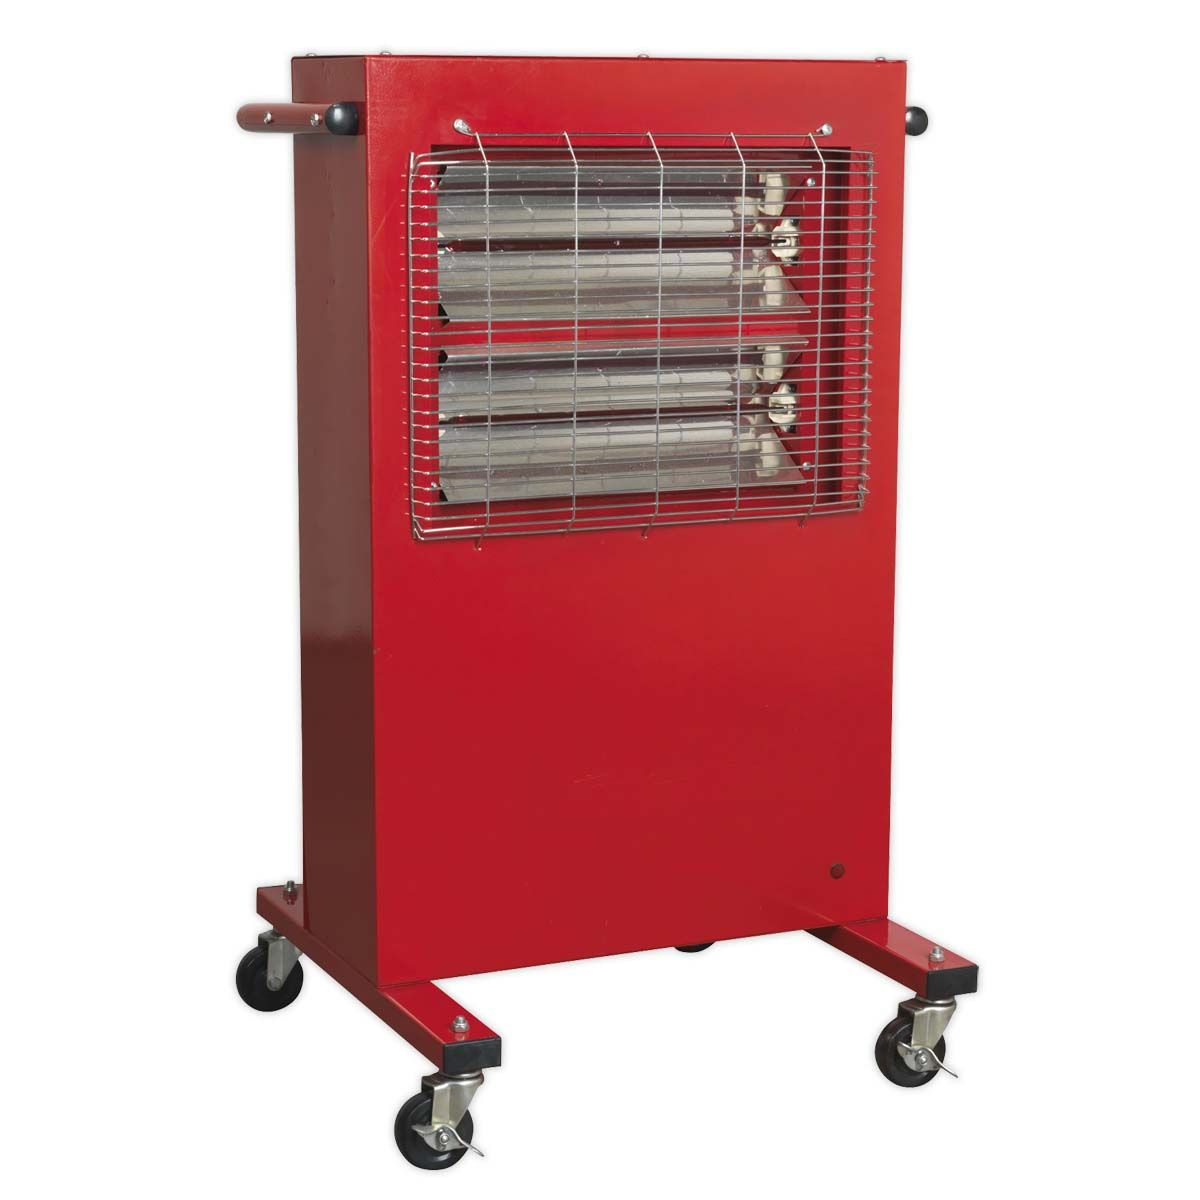 Sealey IRC153 3kW Infrared Cabinet Heater 230v